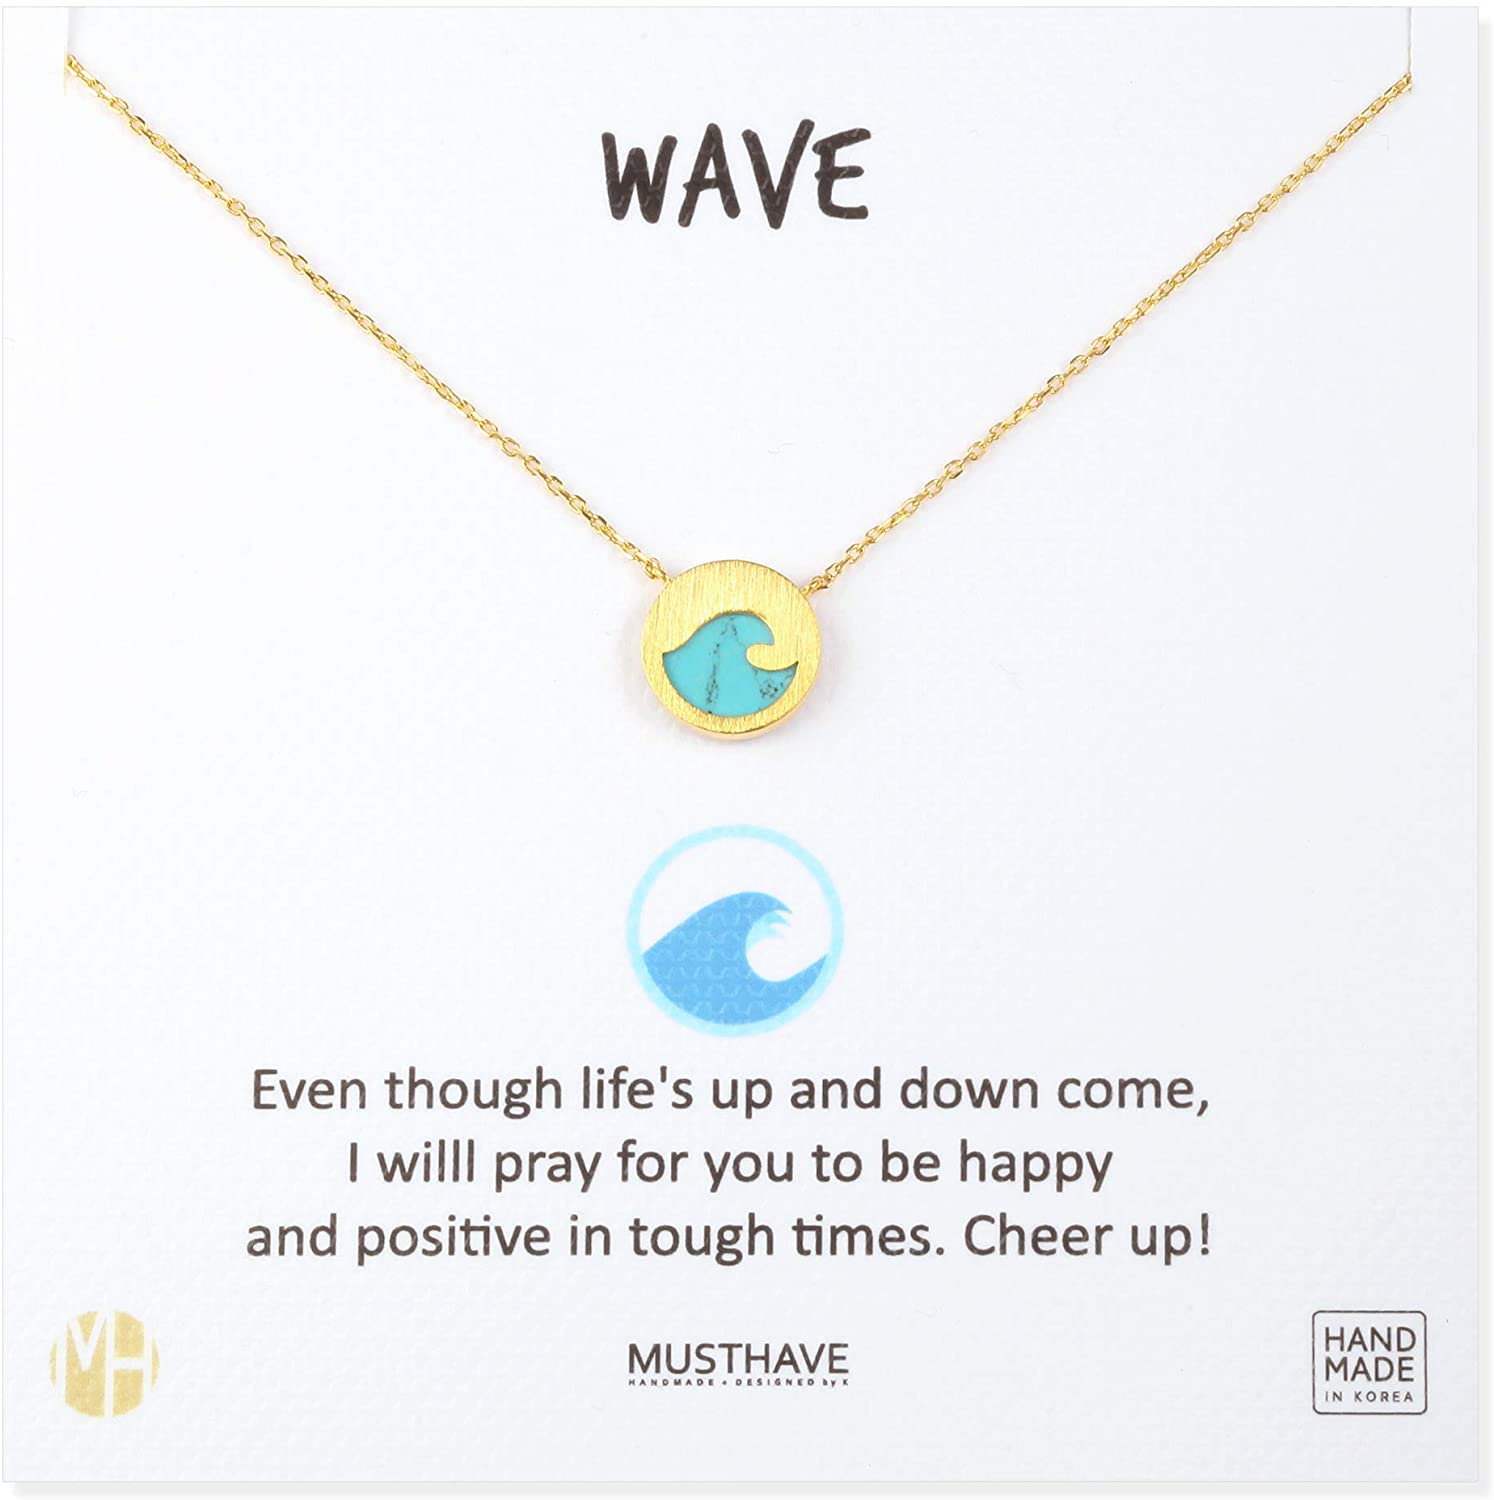 MUSTHAVE Wave 18K Gold Plated Gem Stone Necklace with Message Card, Lapis/White/Turquoise/Malachite Color, Anchor Chain, Best Gift Necklace, Size 16 inch + 2 inch Extender, Wave Pendant, Gift Card